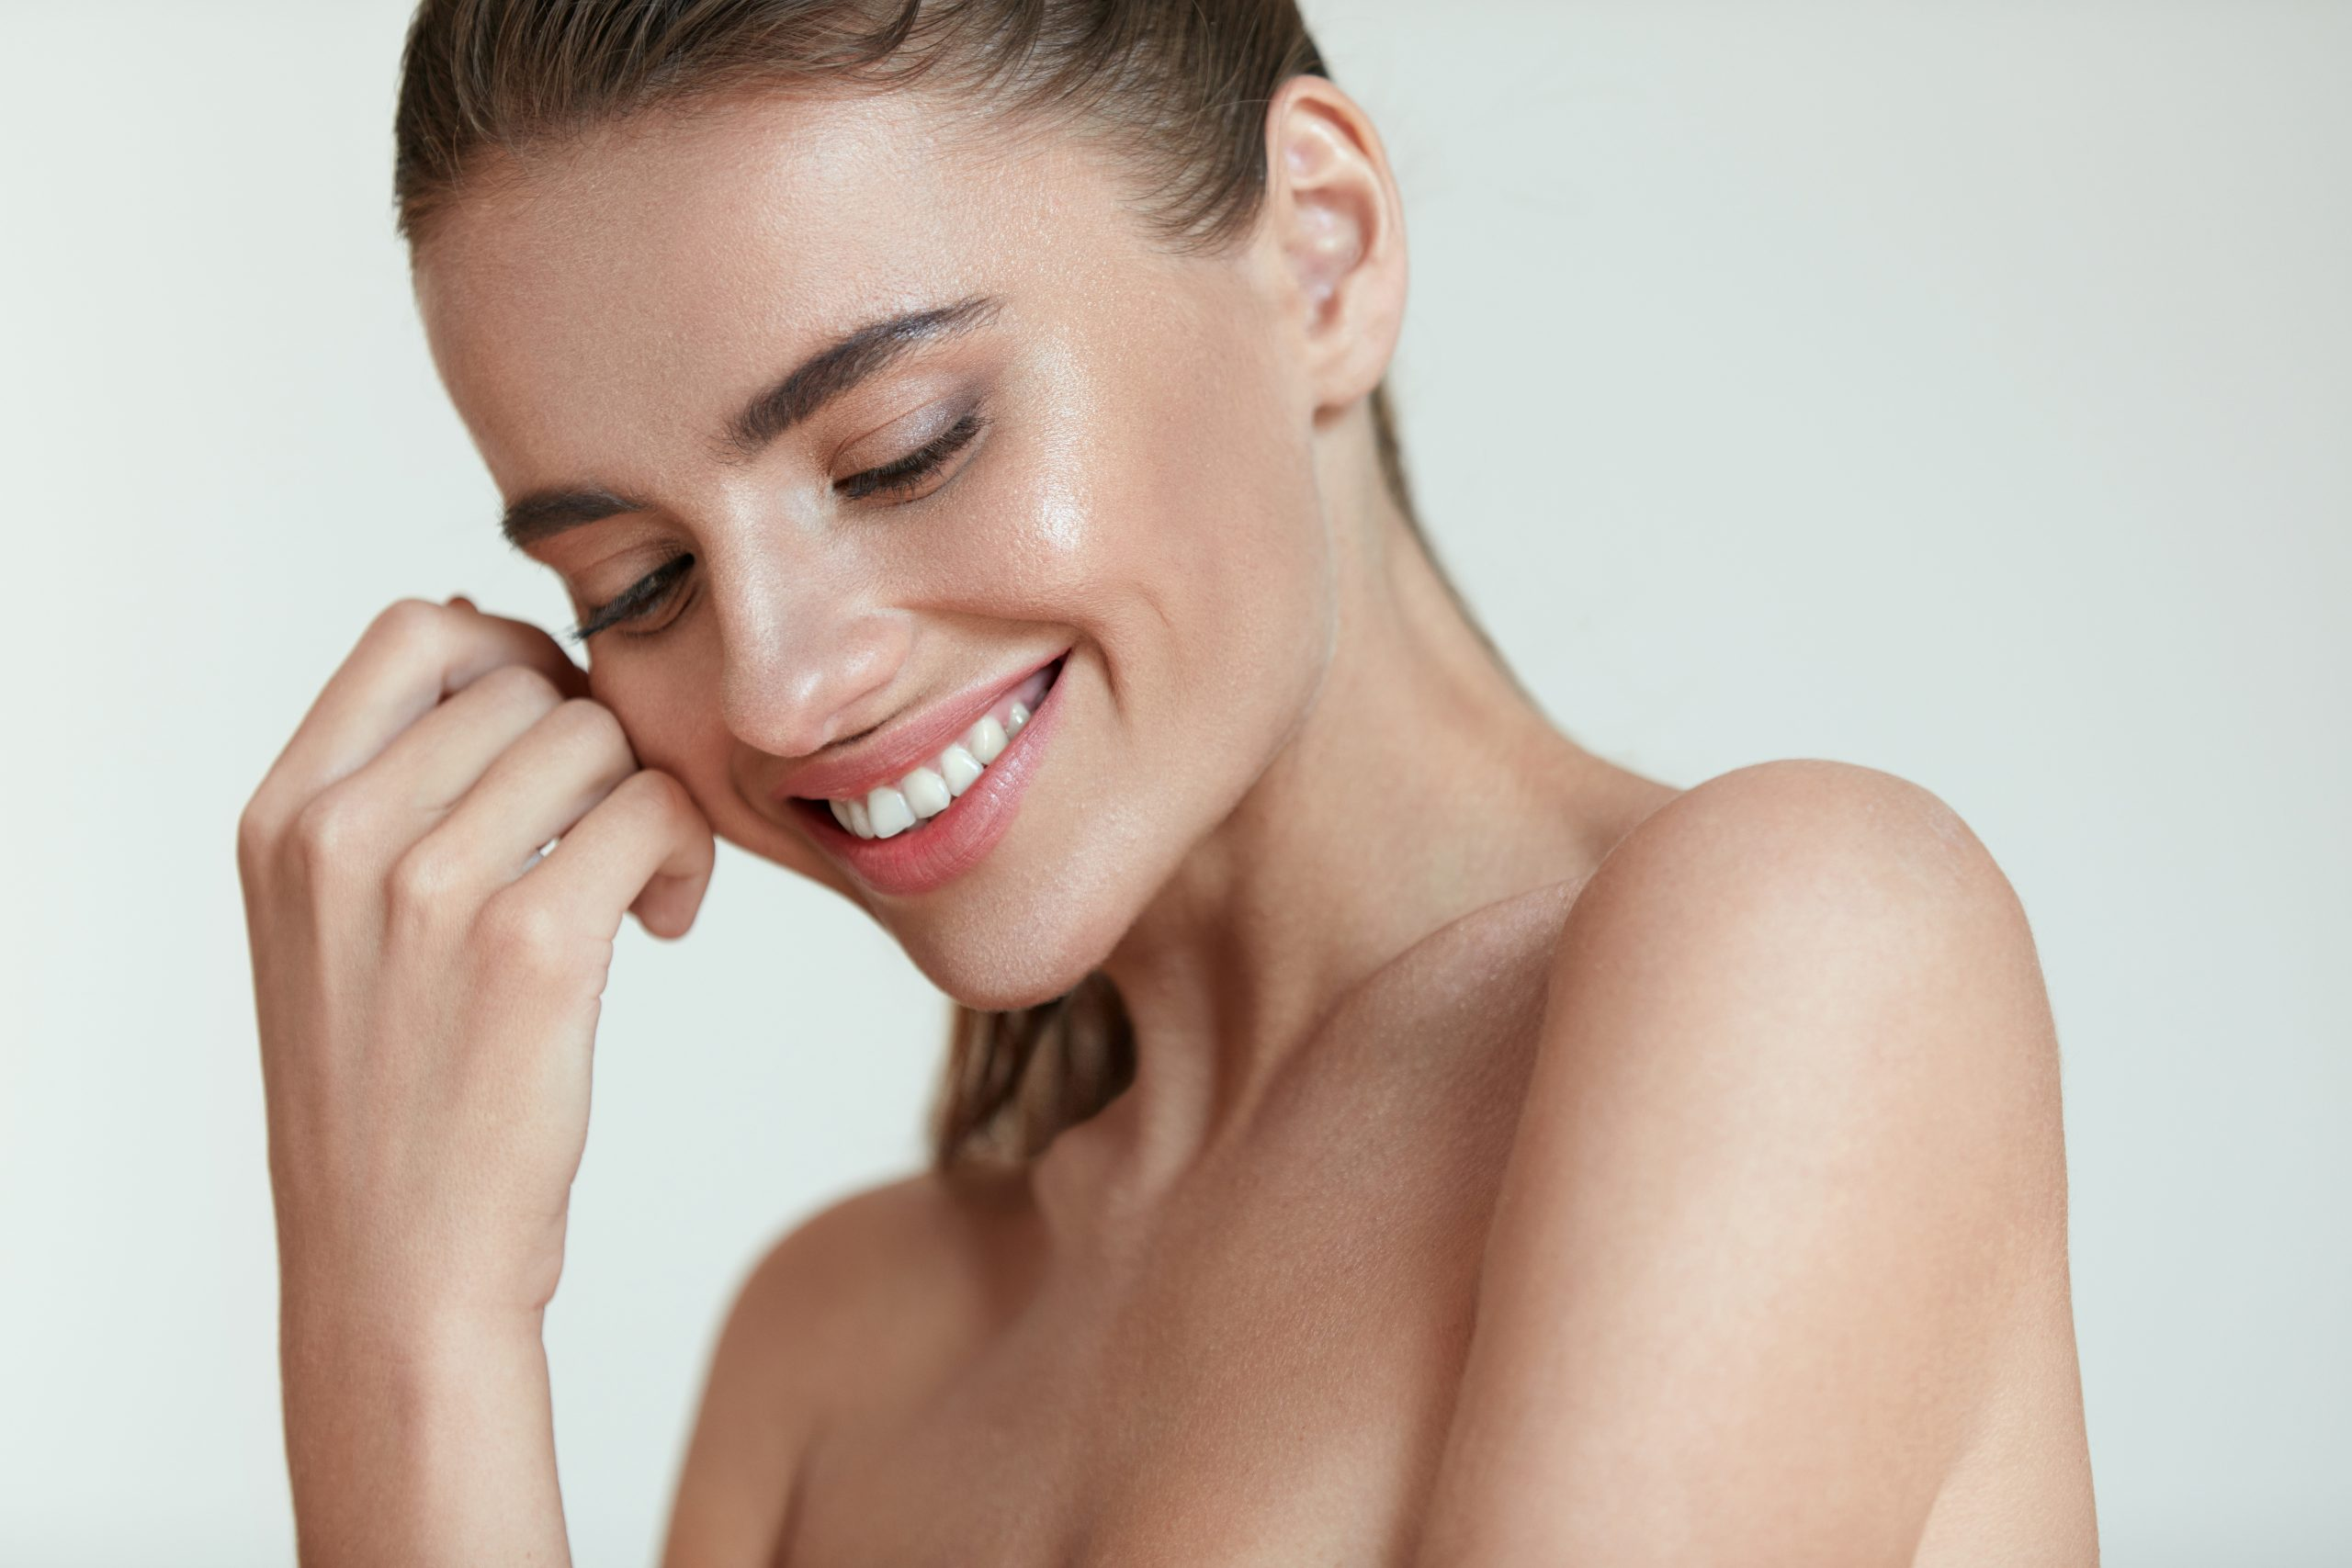 woman smiling while looking downwards